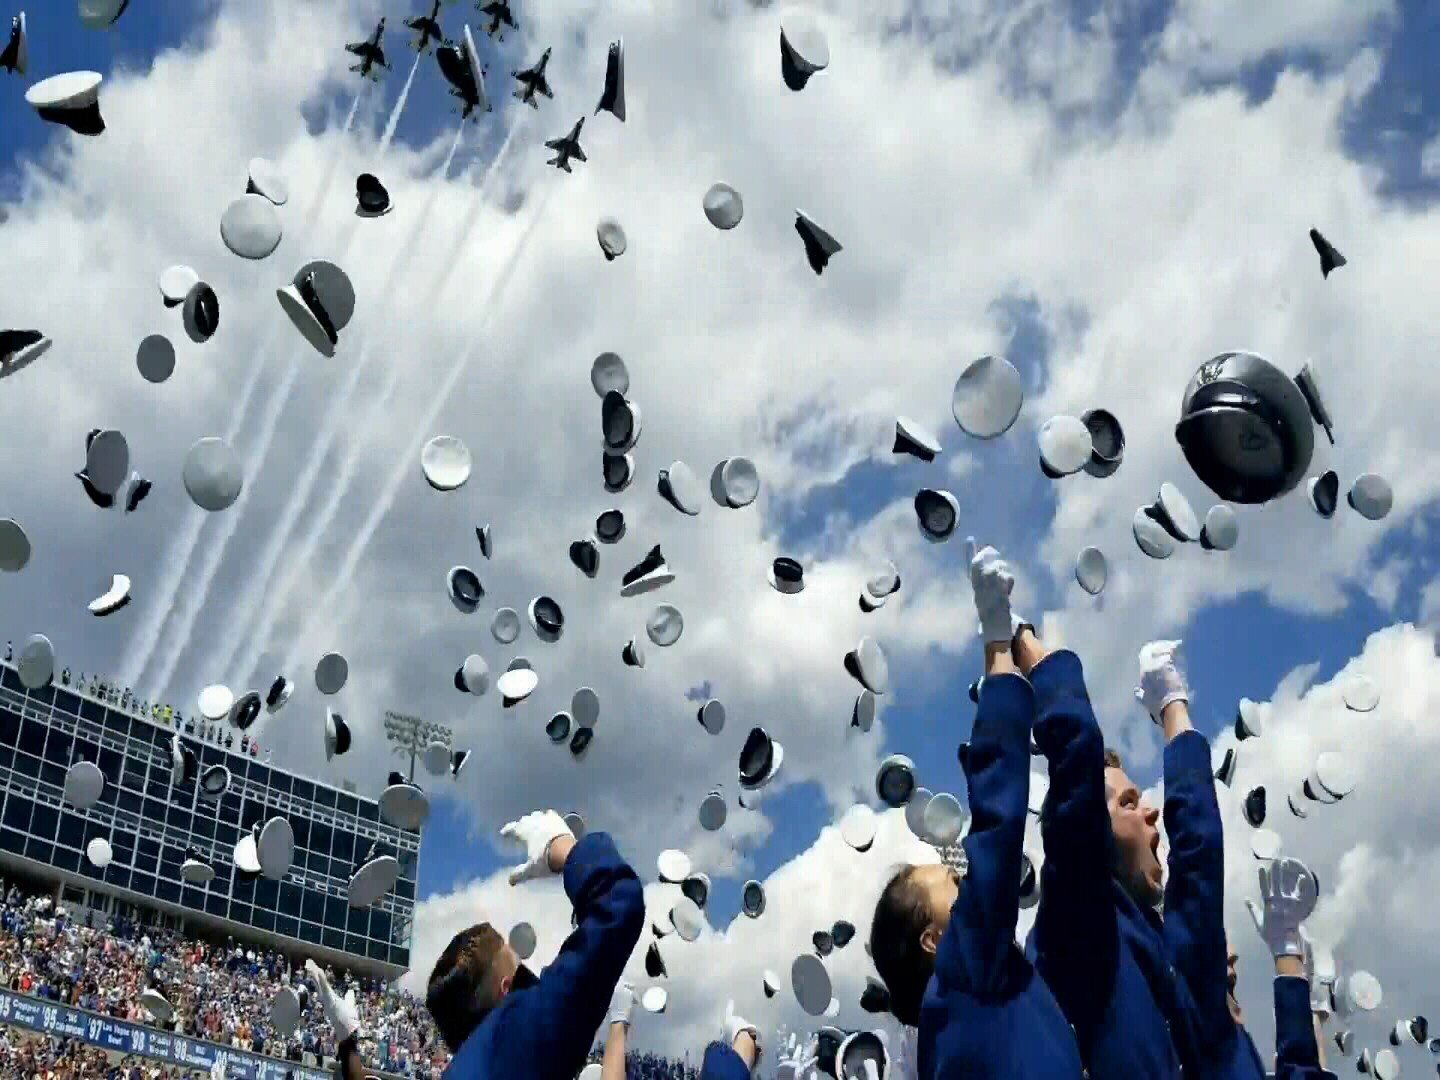 Nearly 1000 cadets graduate from the United States Air Force Academy. (KOAA)